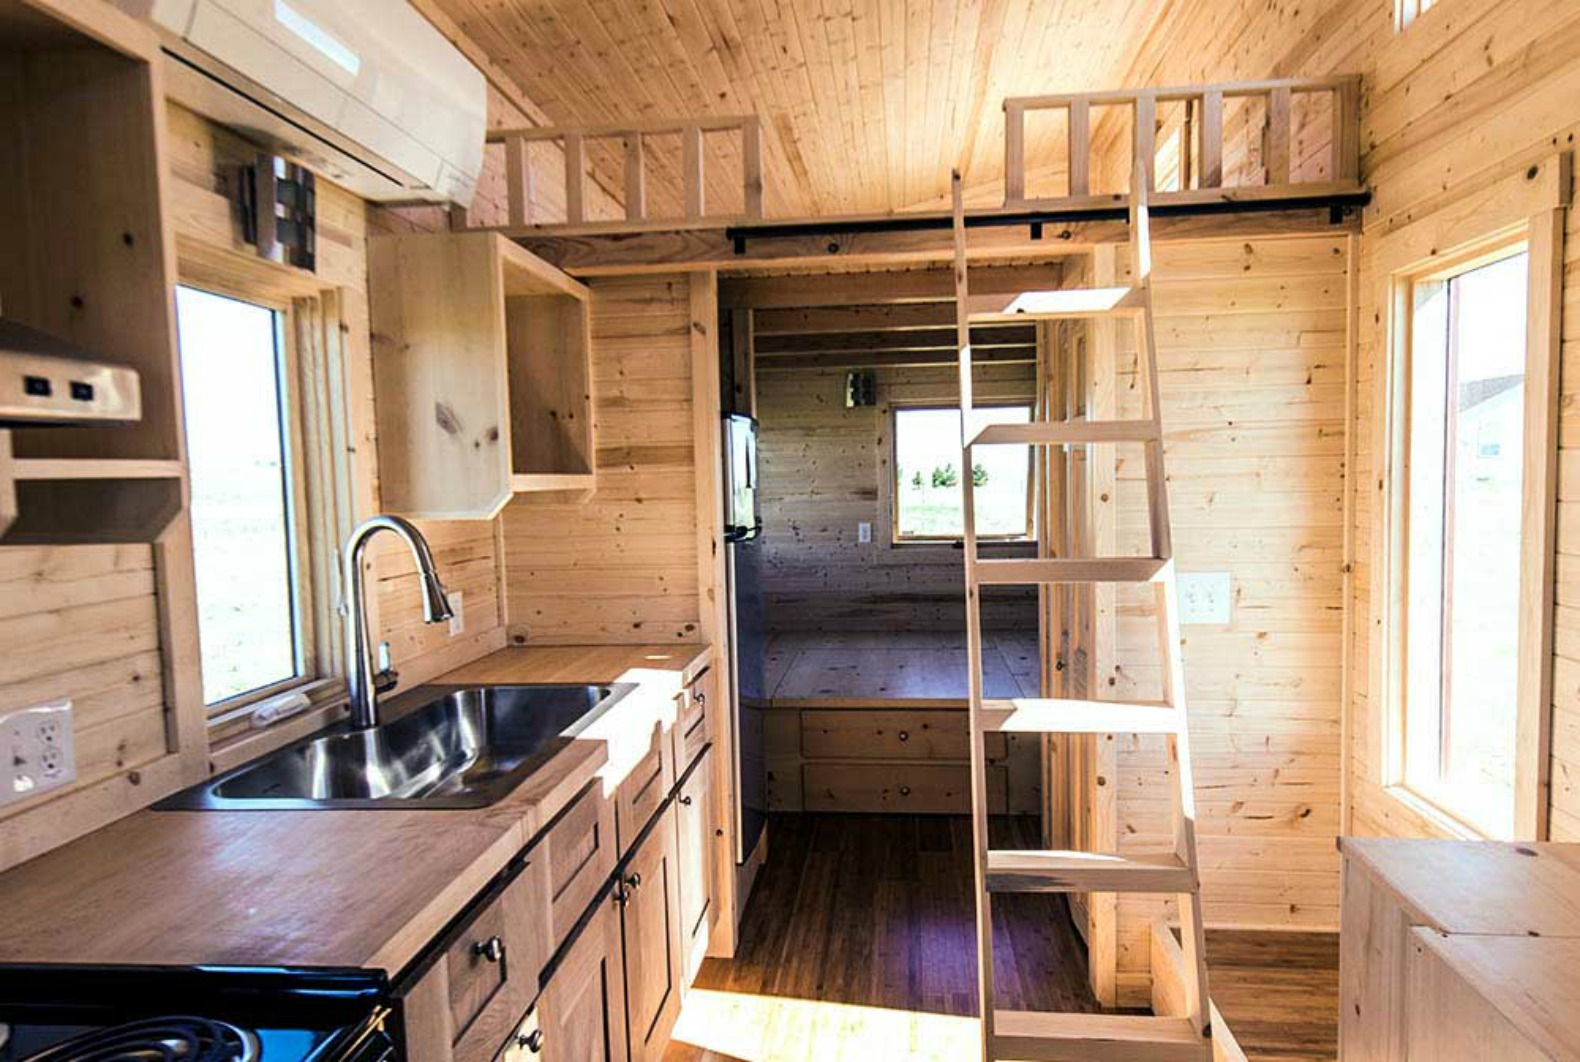 Tiny Home Designs: $63k Tiny Home Manages To Feel Open And Airy In Just 188